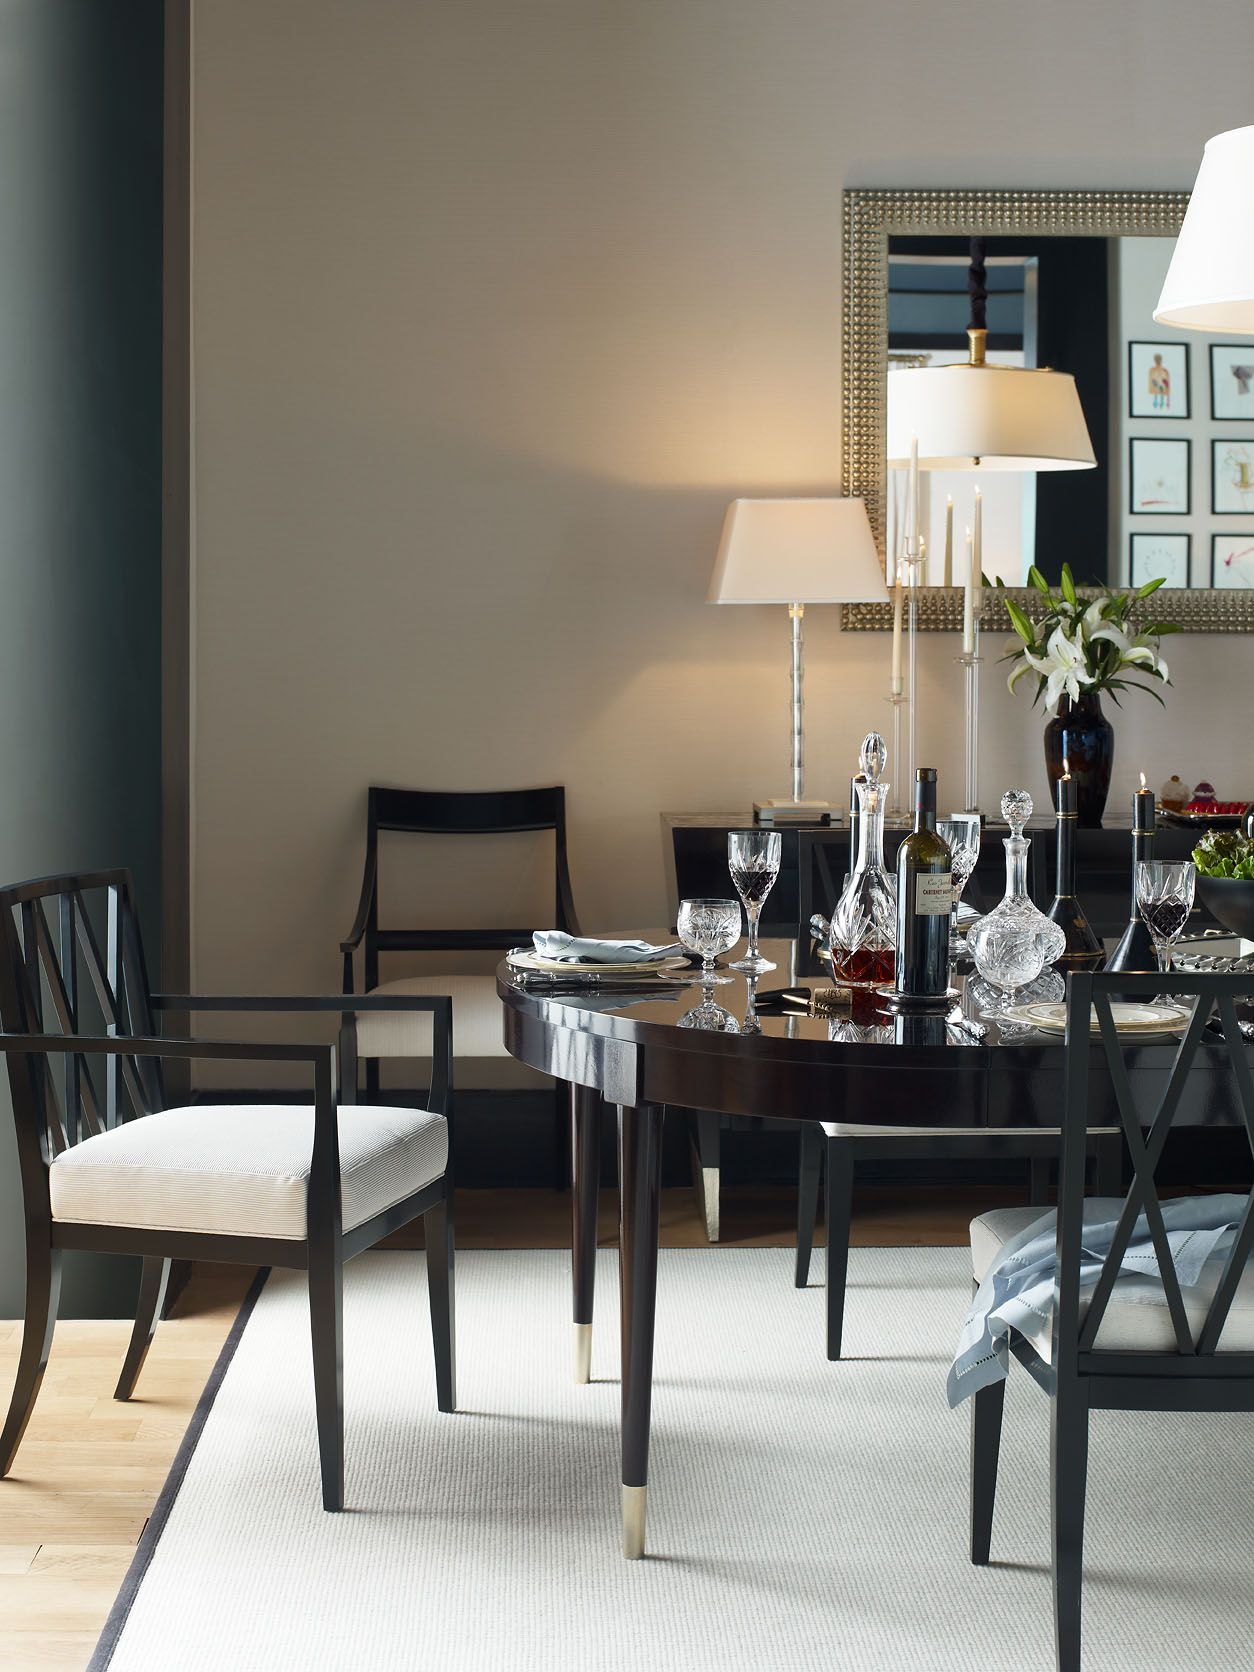 The Jacques Garcia Collection Baker Furniture Bakerfurniture